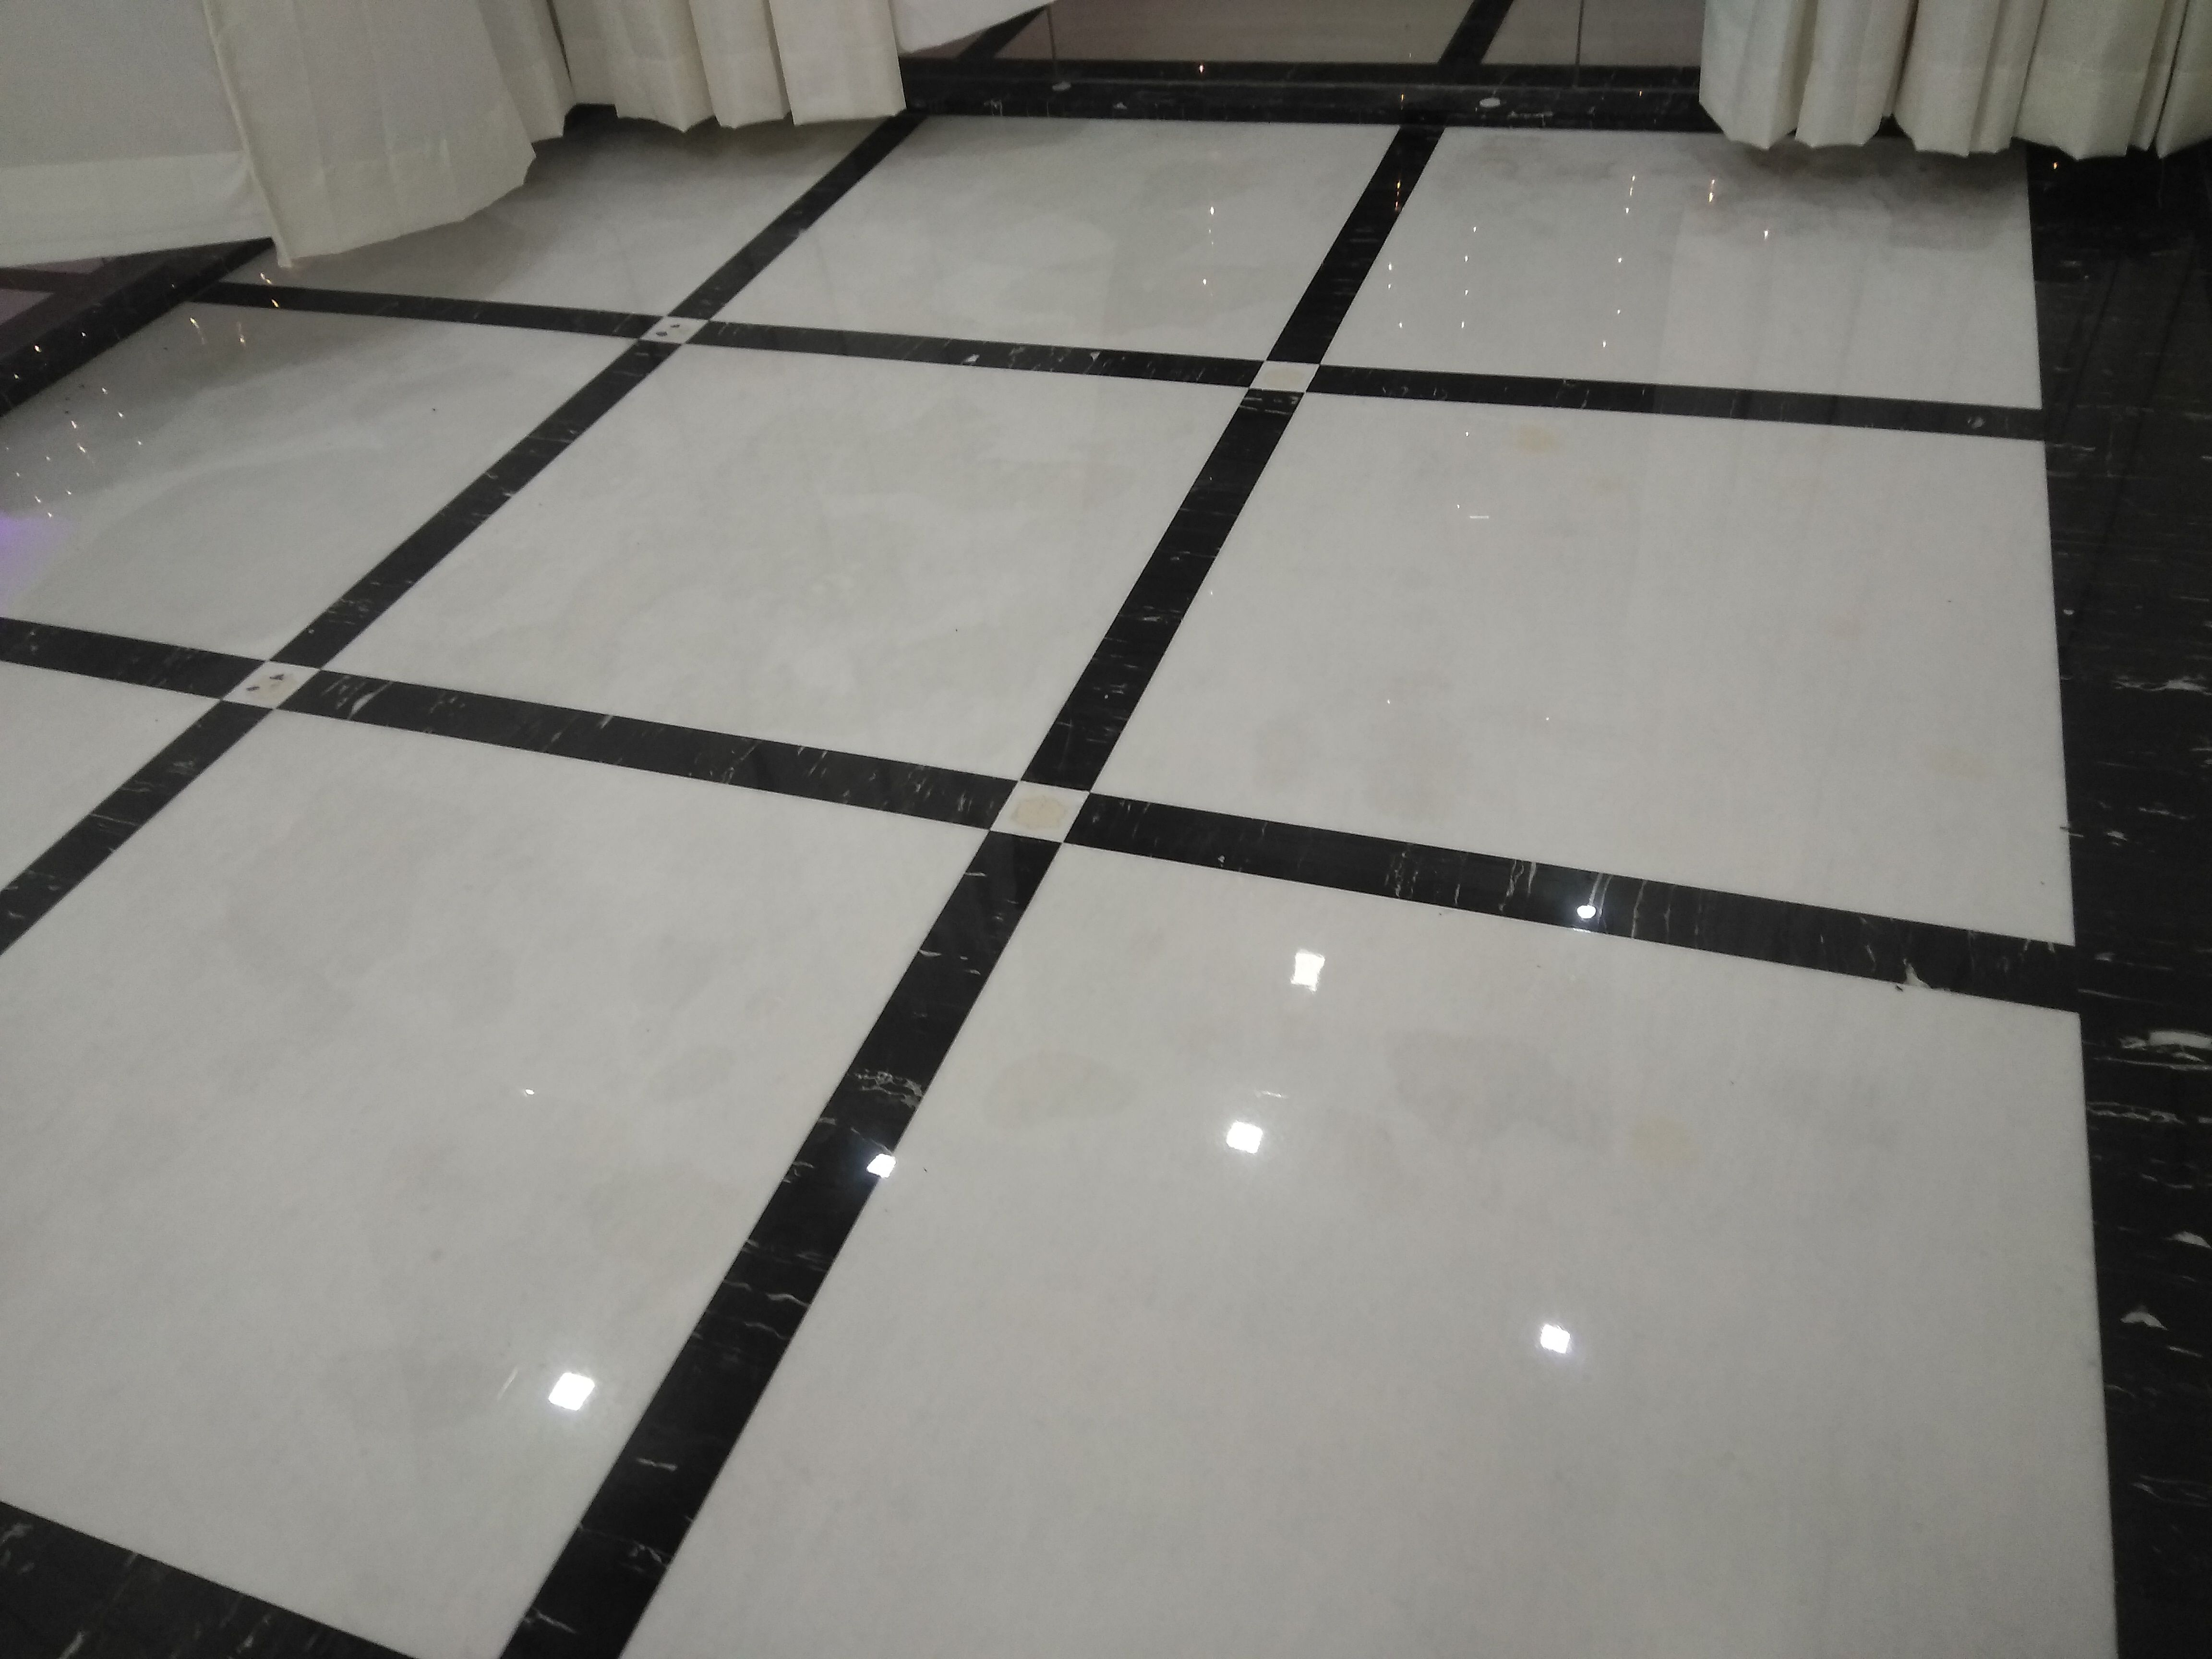 Perfect Indian Marble Flooring Design And Description Marble Flooring Design Floor Design Marble Design